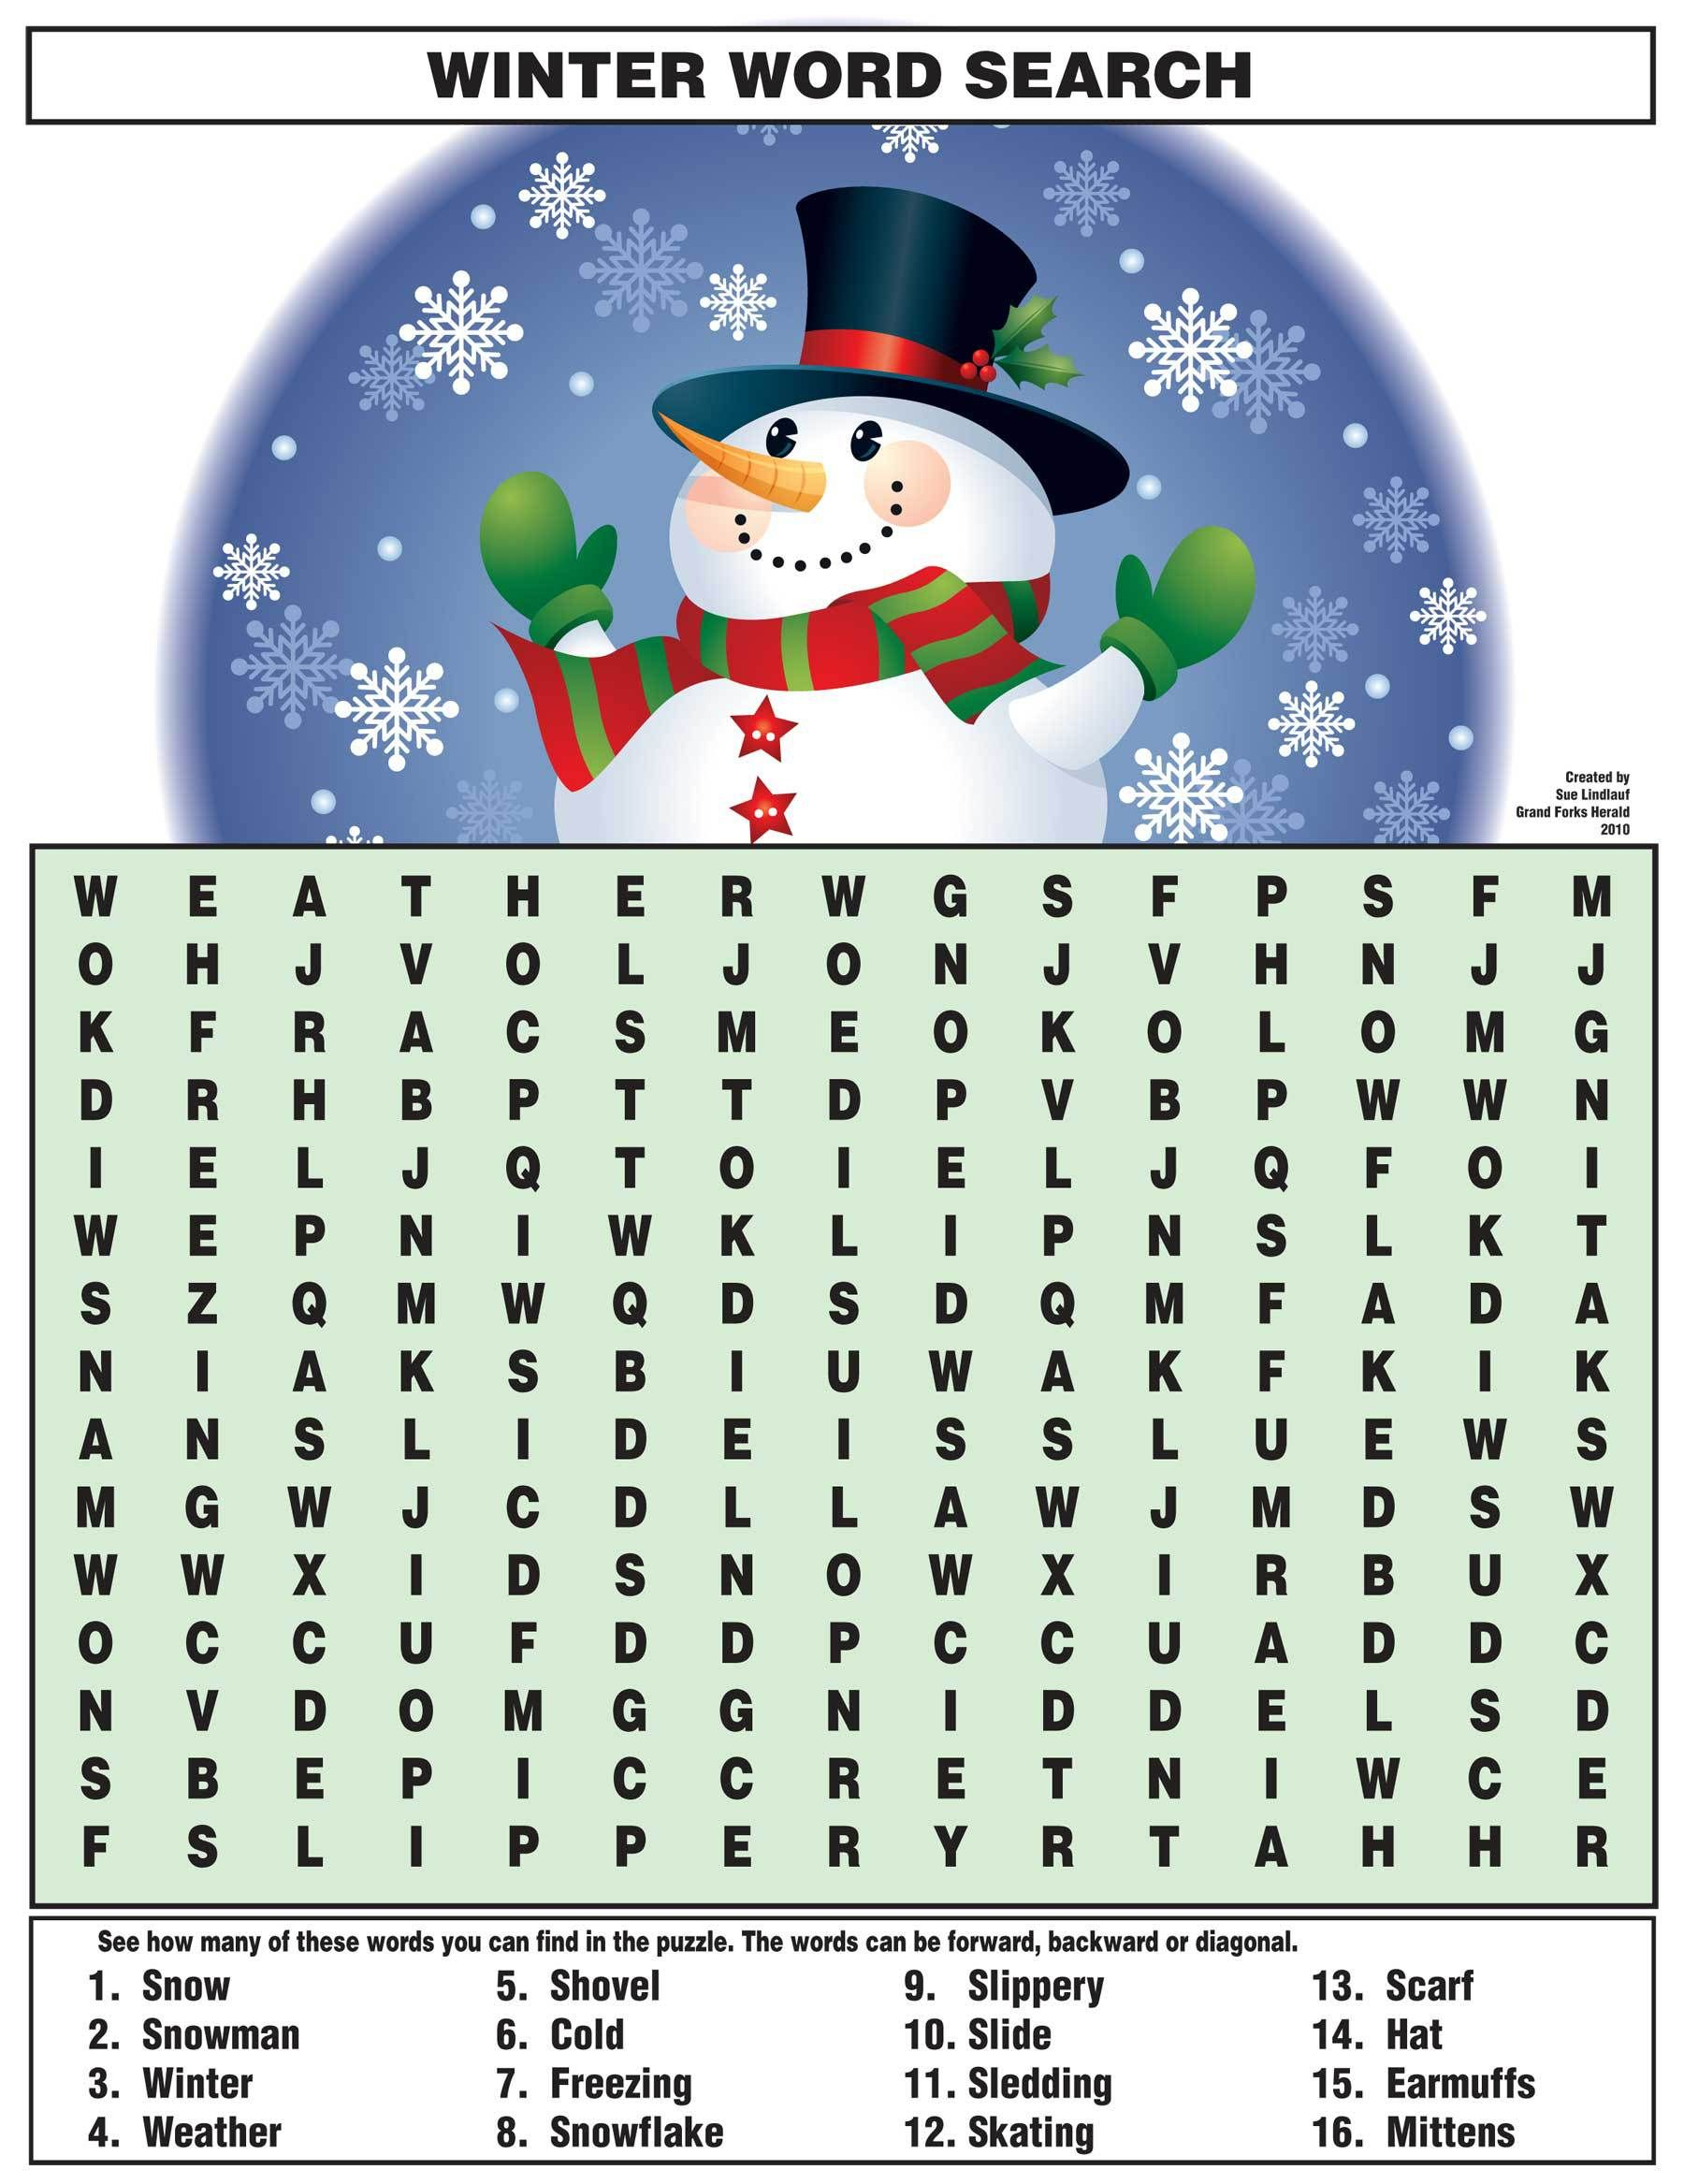 December 22nd Is The First Day Of Winter How Many Words Related To Winter Can You Find In The